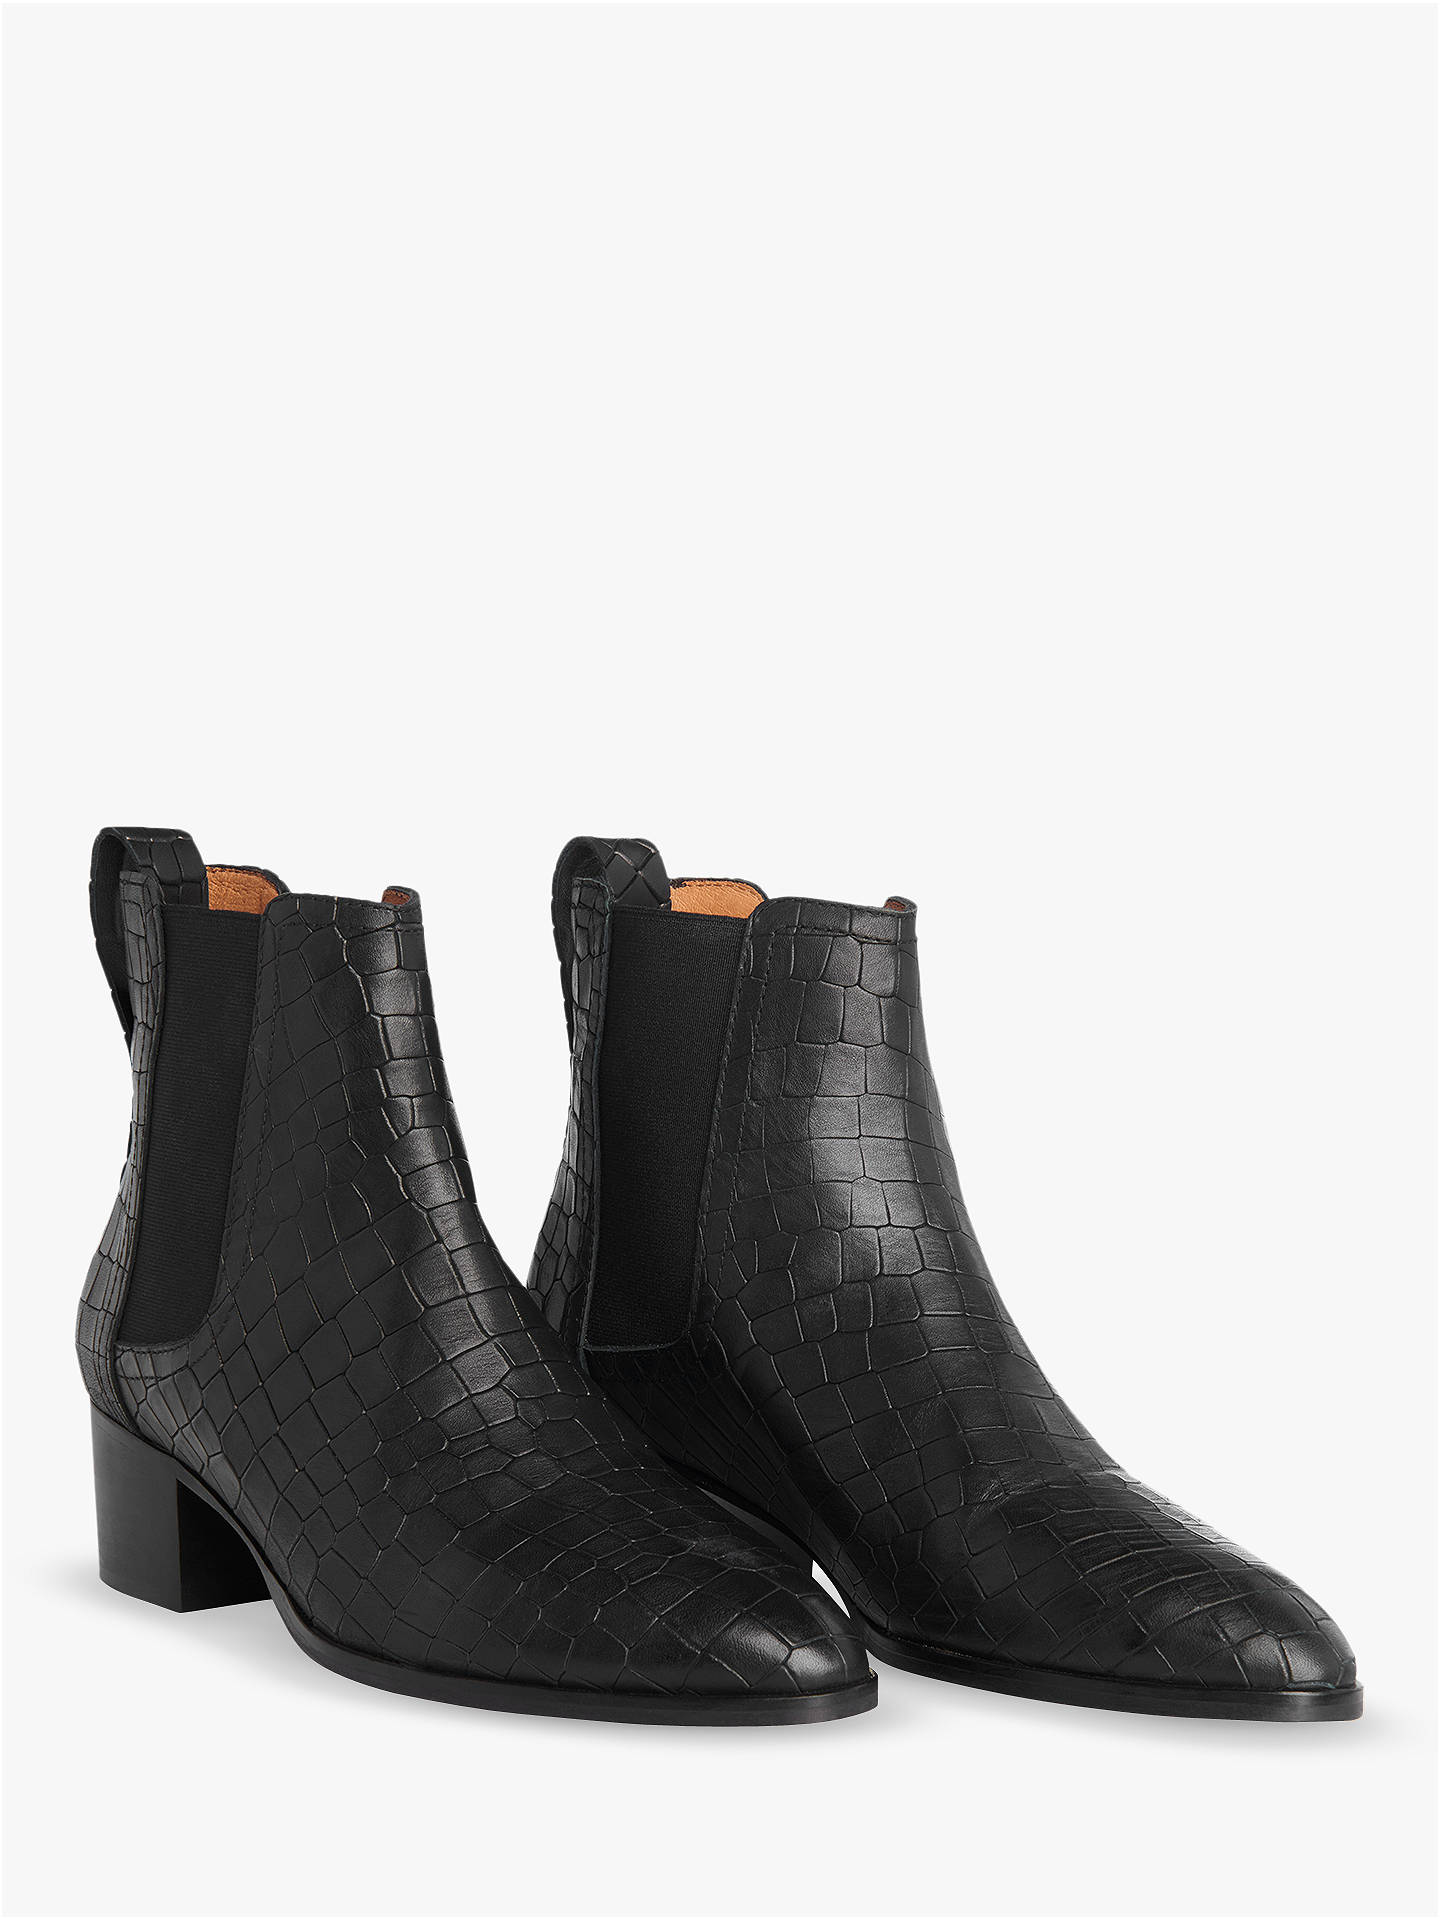 BuyWhistles Daisley Croc Chelsea Boots, Black, 4 Online at johnlewis.com